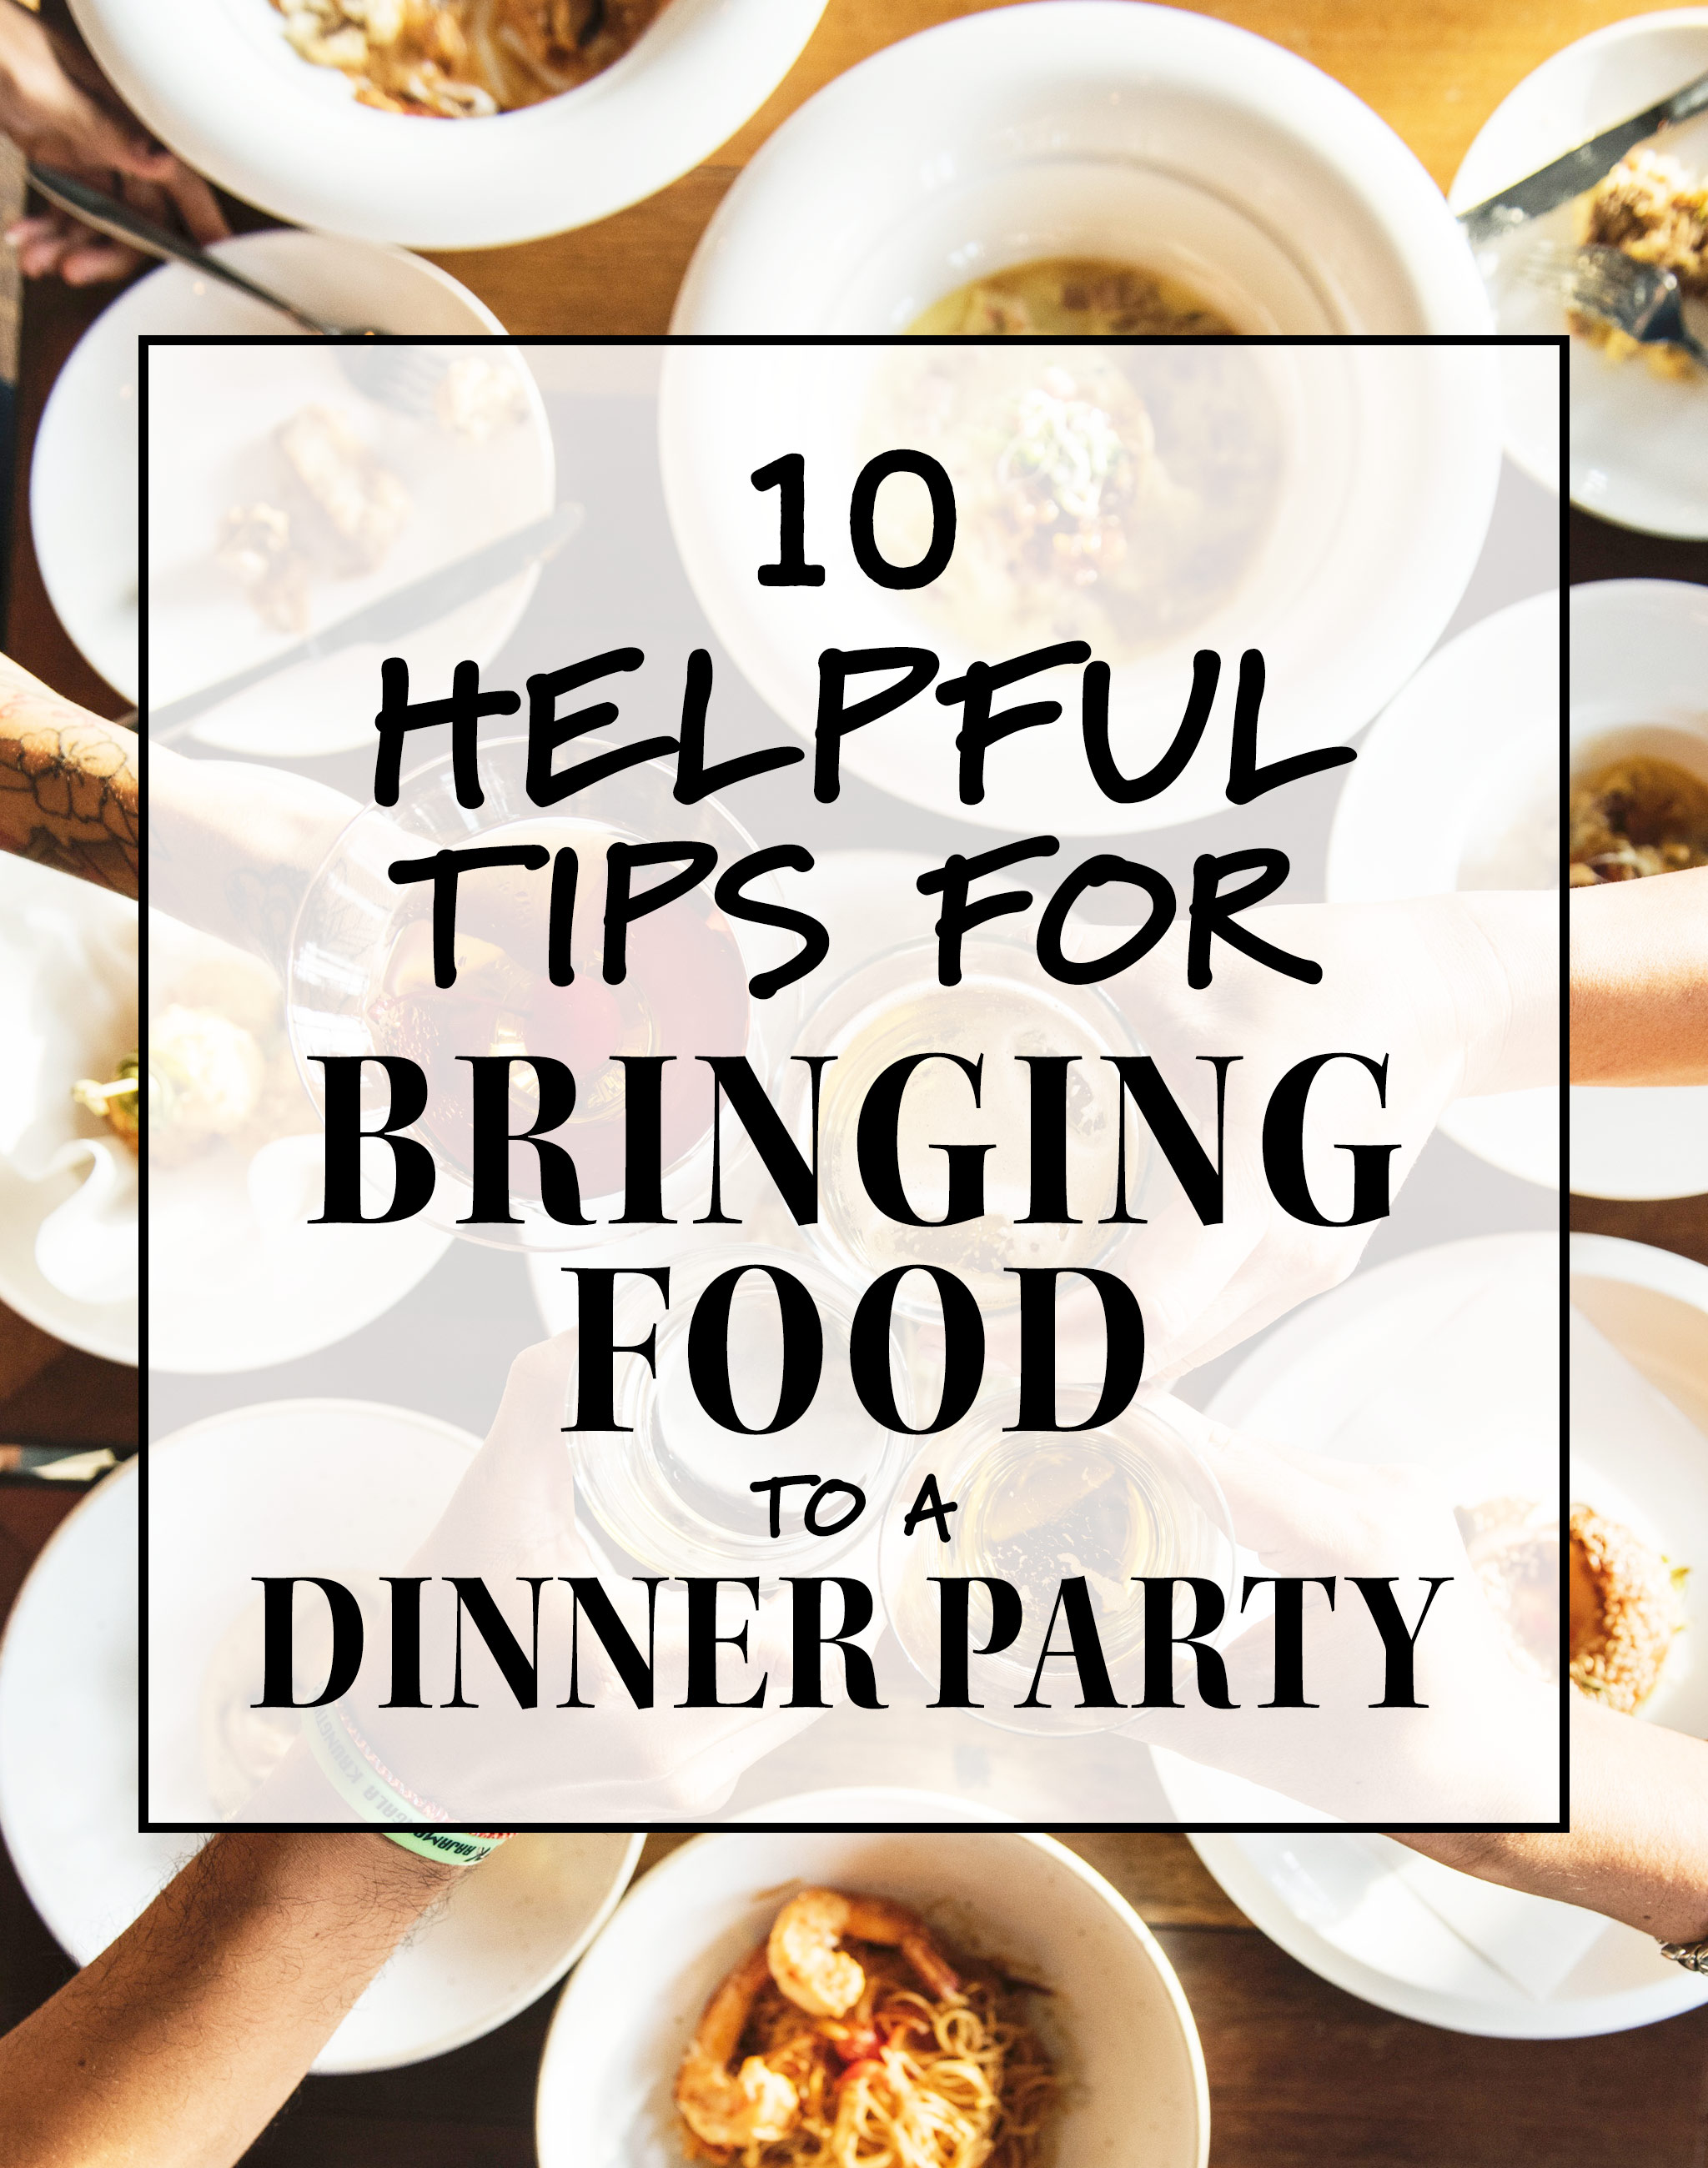 10 helpful tips for bringing food to a dinner party